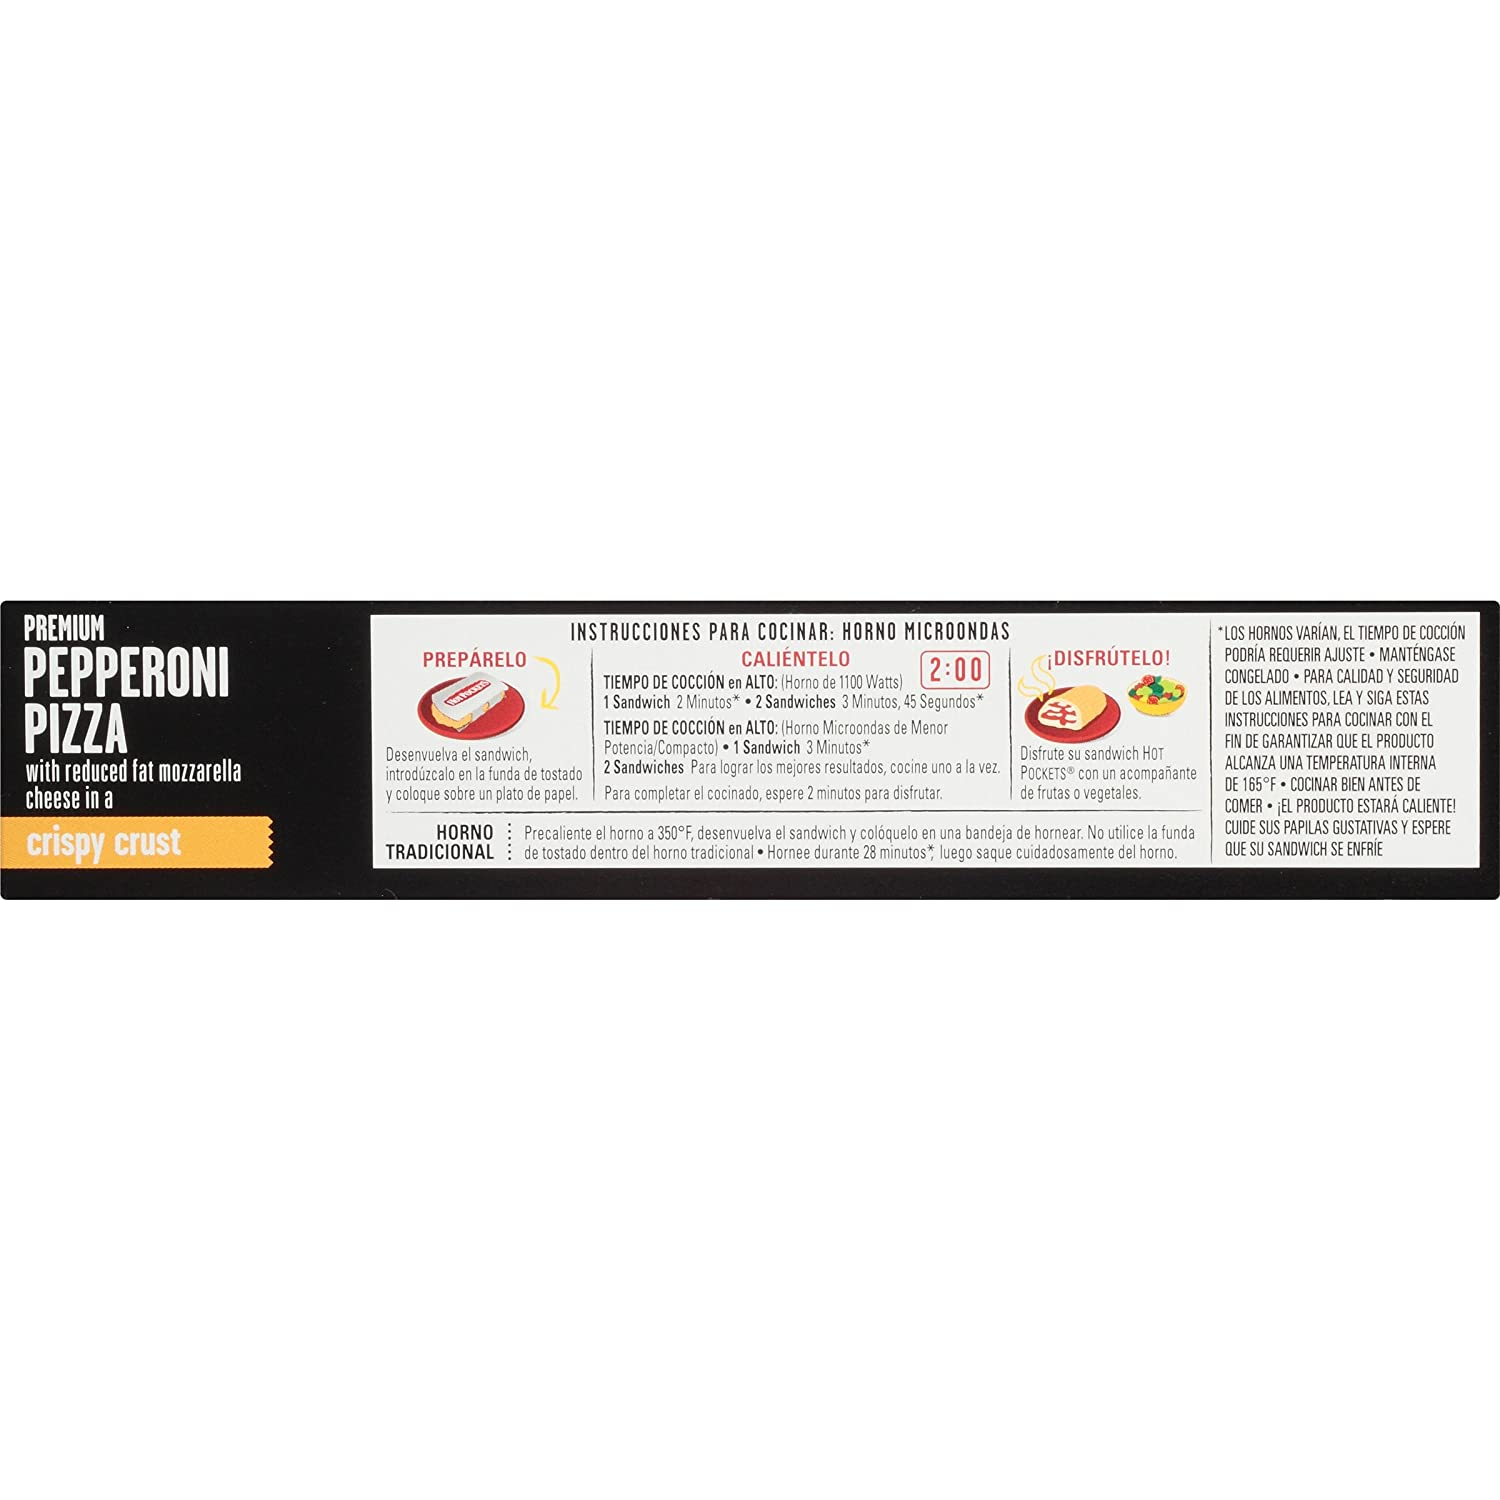 Hot Pockets, Crispy Crust Pepperoni Pizza, 2 sandwiches, 9 oz (Frozen): Amazon.com: Grocery & Gourmet Food